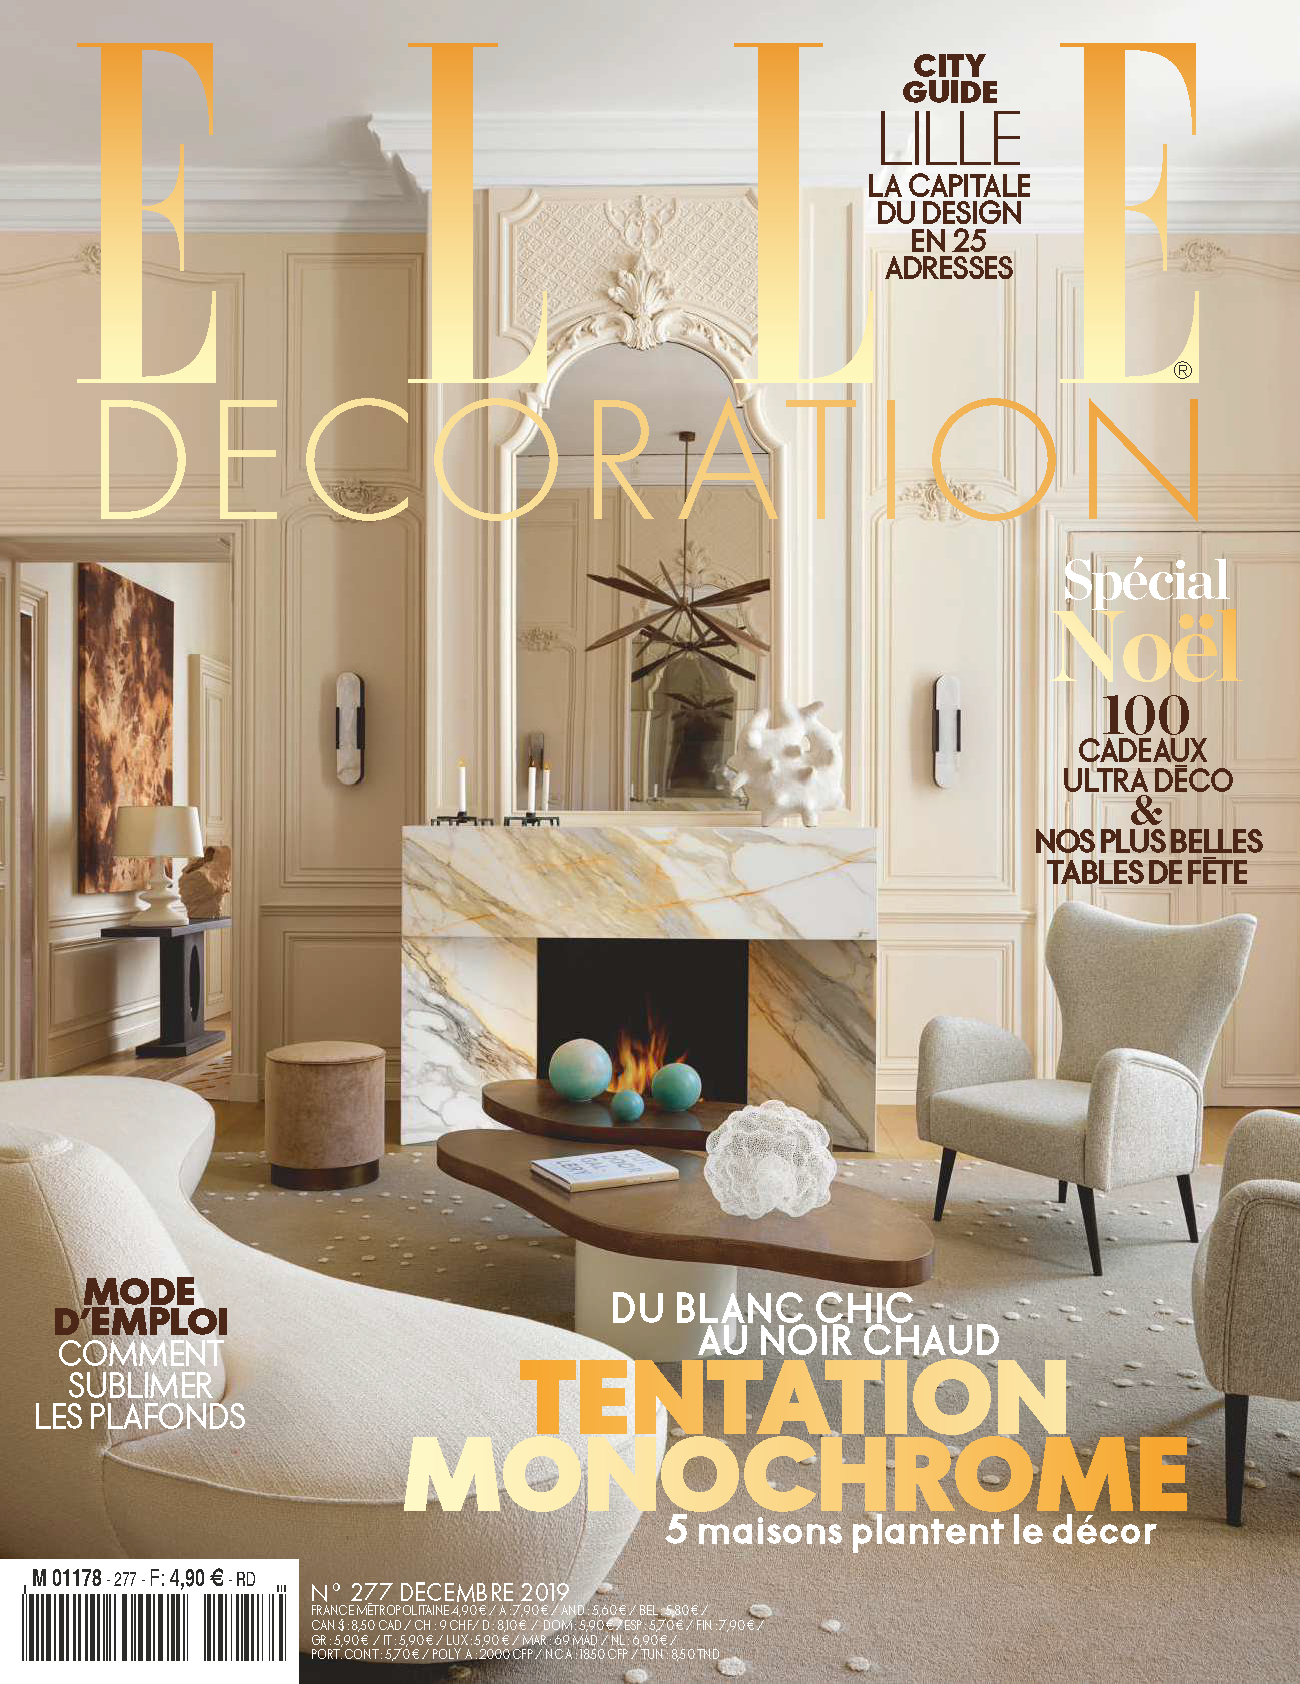 MAG - 2019 - ELLE DECORATION COVER FRANC